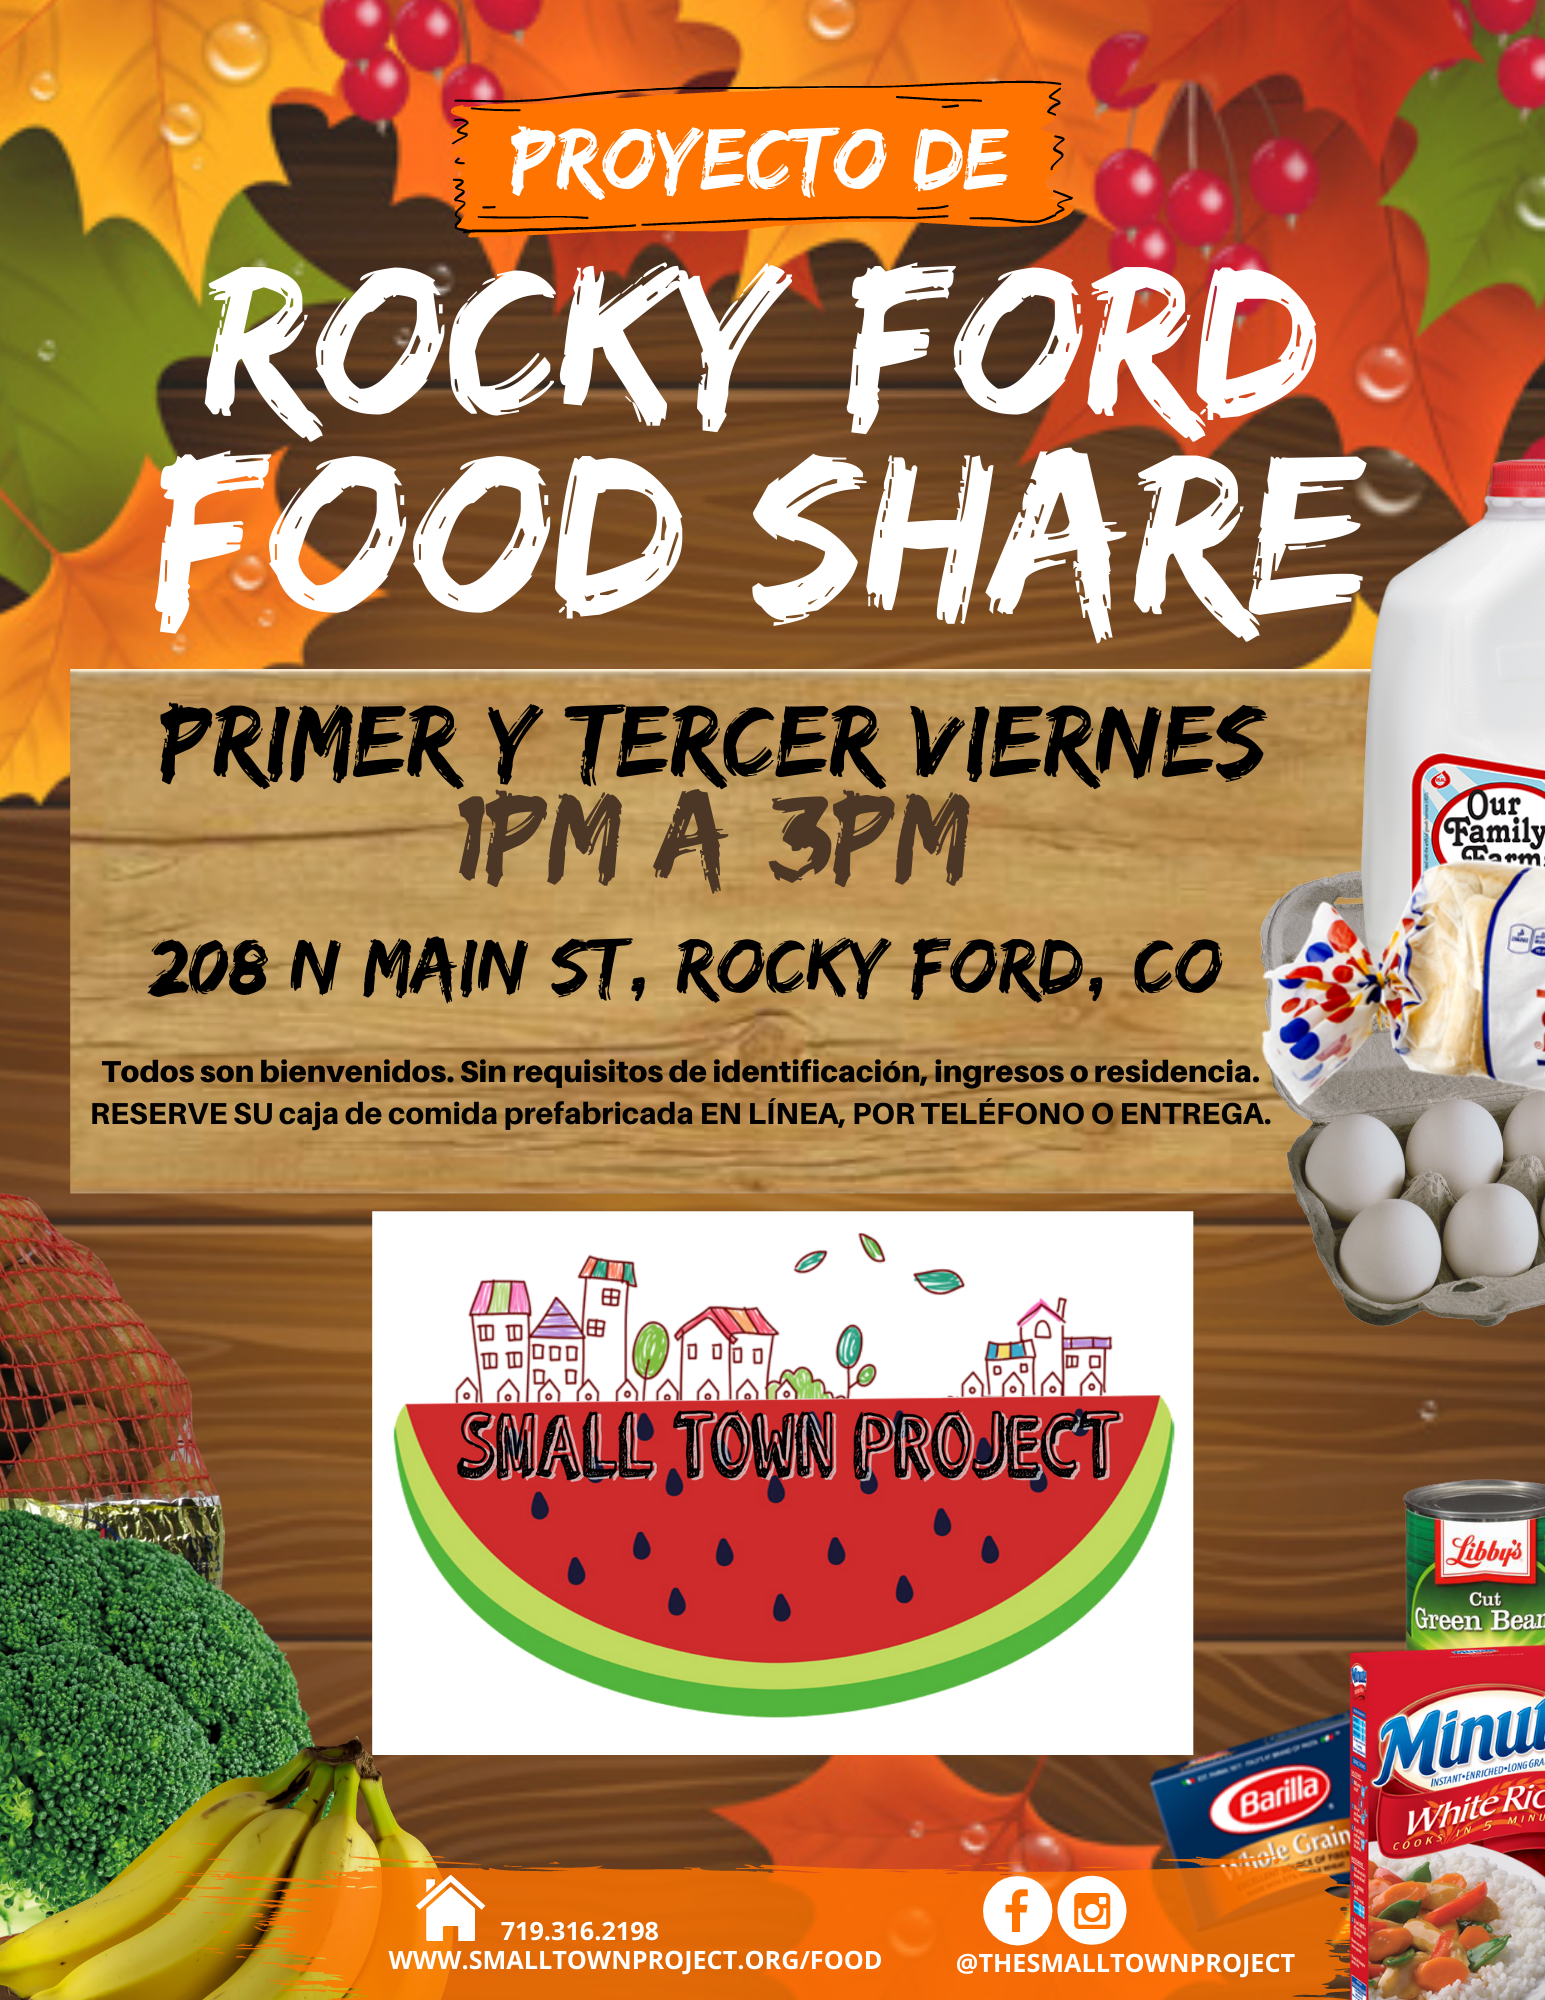 Rocky Ford Food Share Flyer (Spanish)